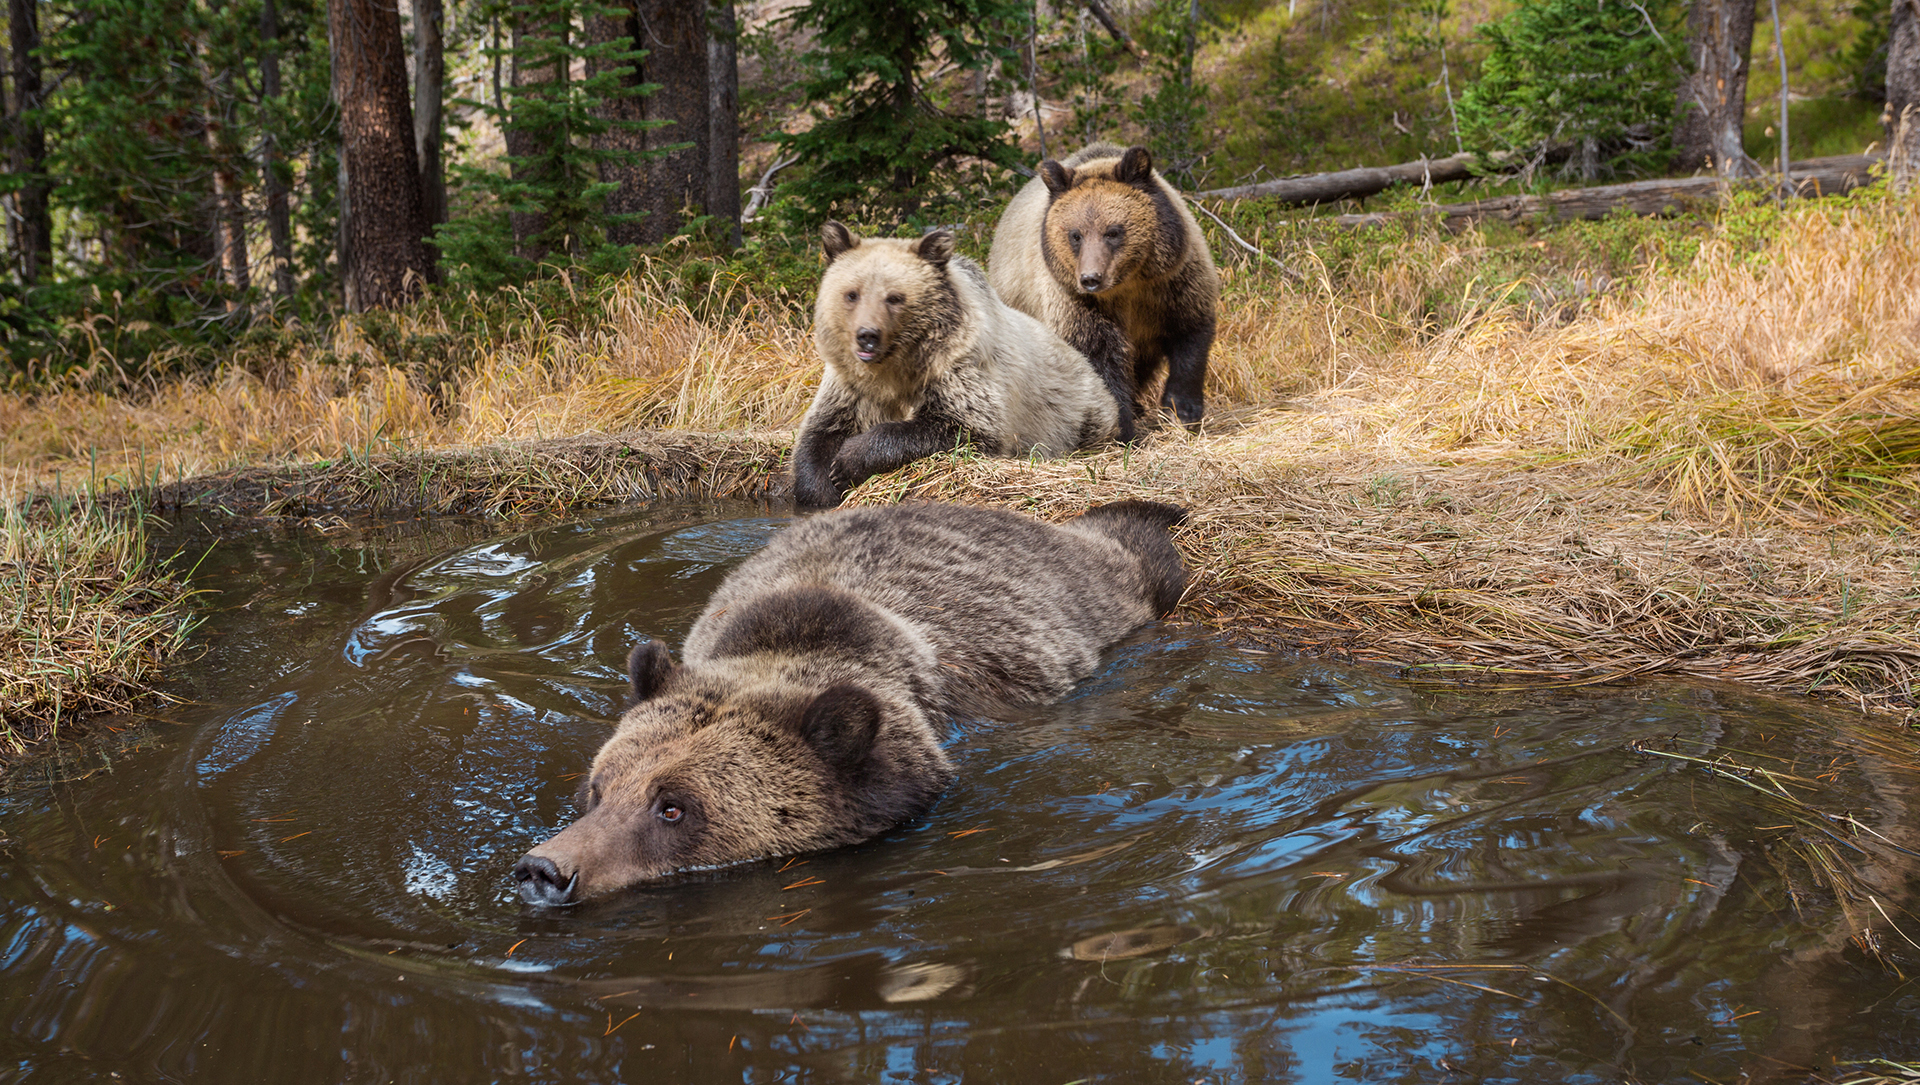 Embrace The Journey To The World Of Animals At Yellowstone National Park